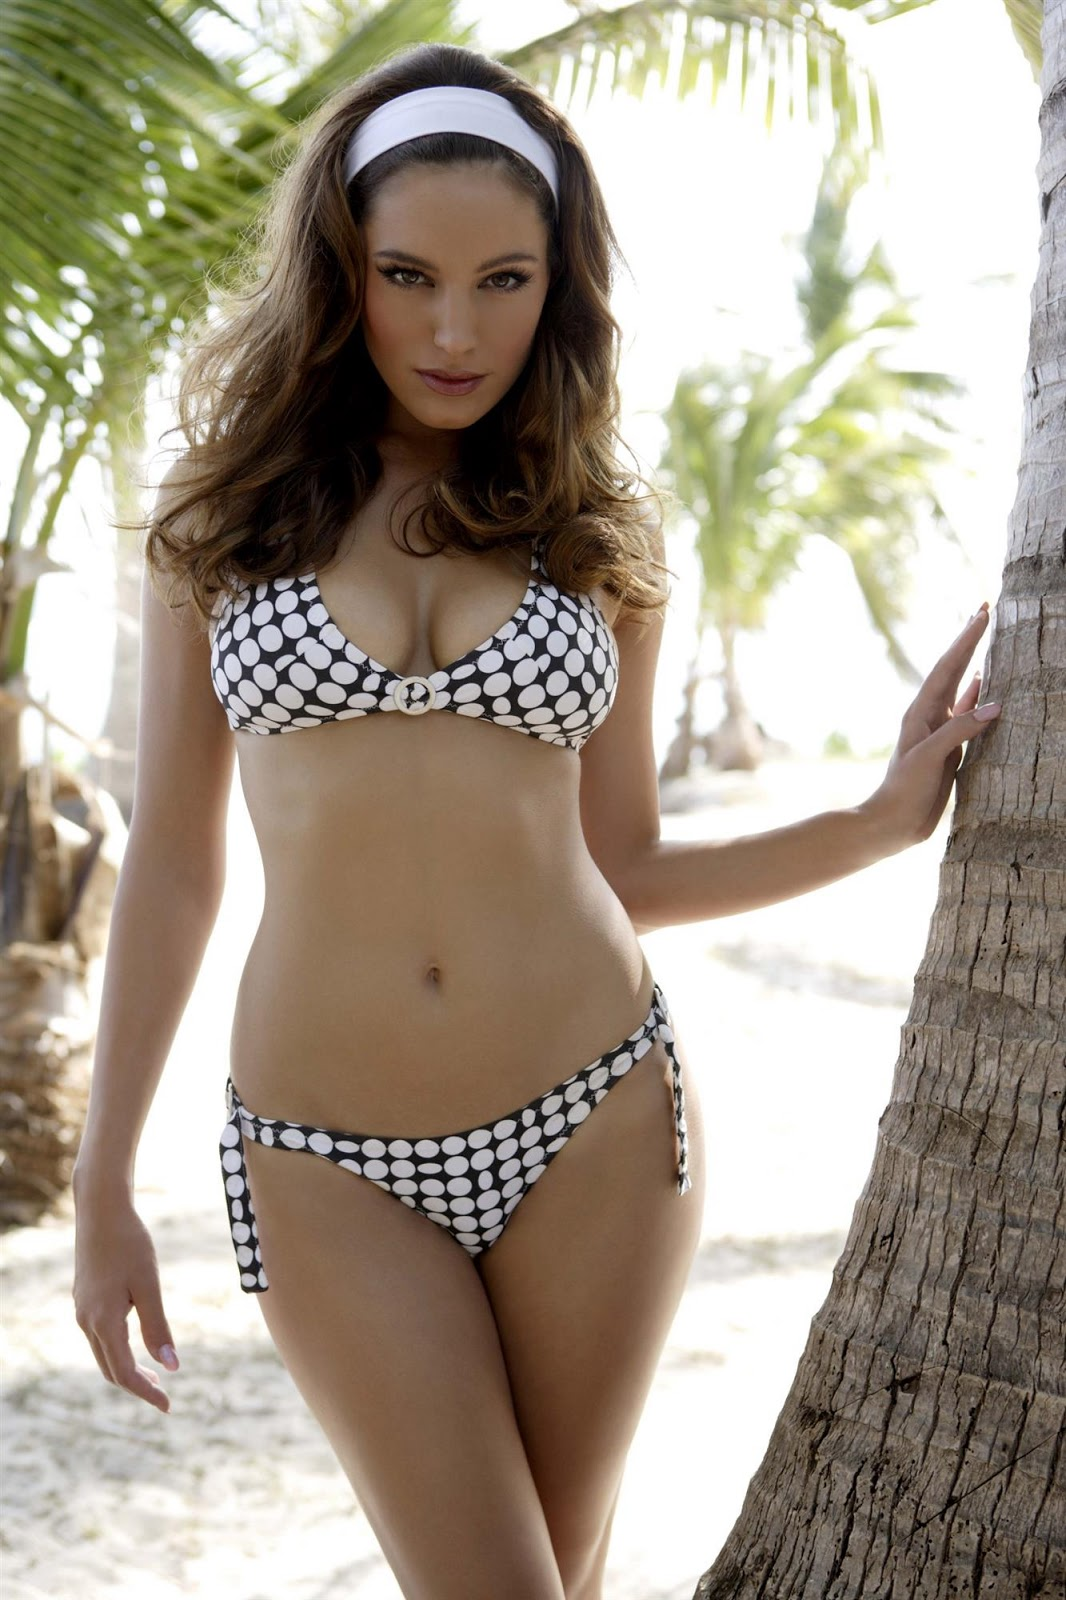 Kelly+Brook+2006+Calendar+8 18 Best Kelly Brook Photos in Swimwear